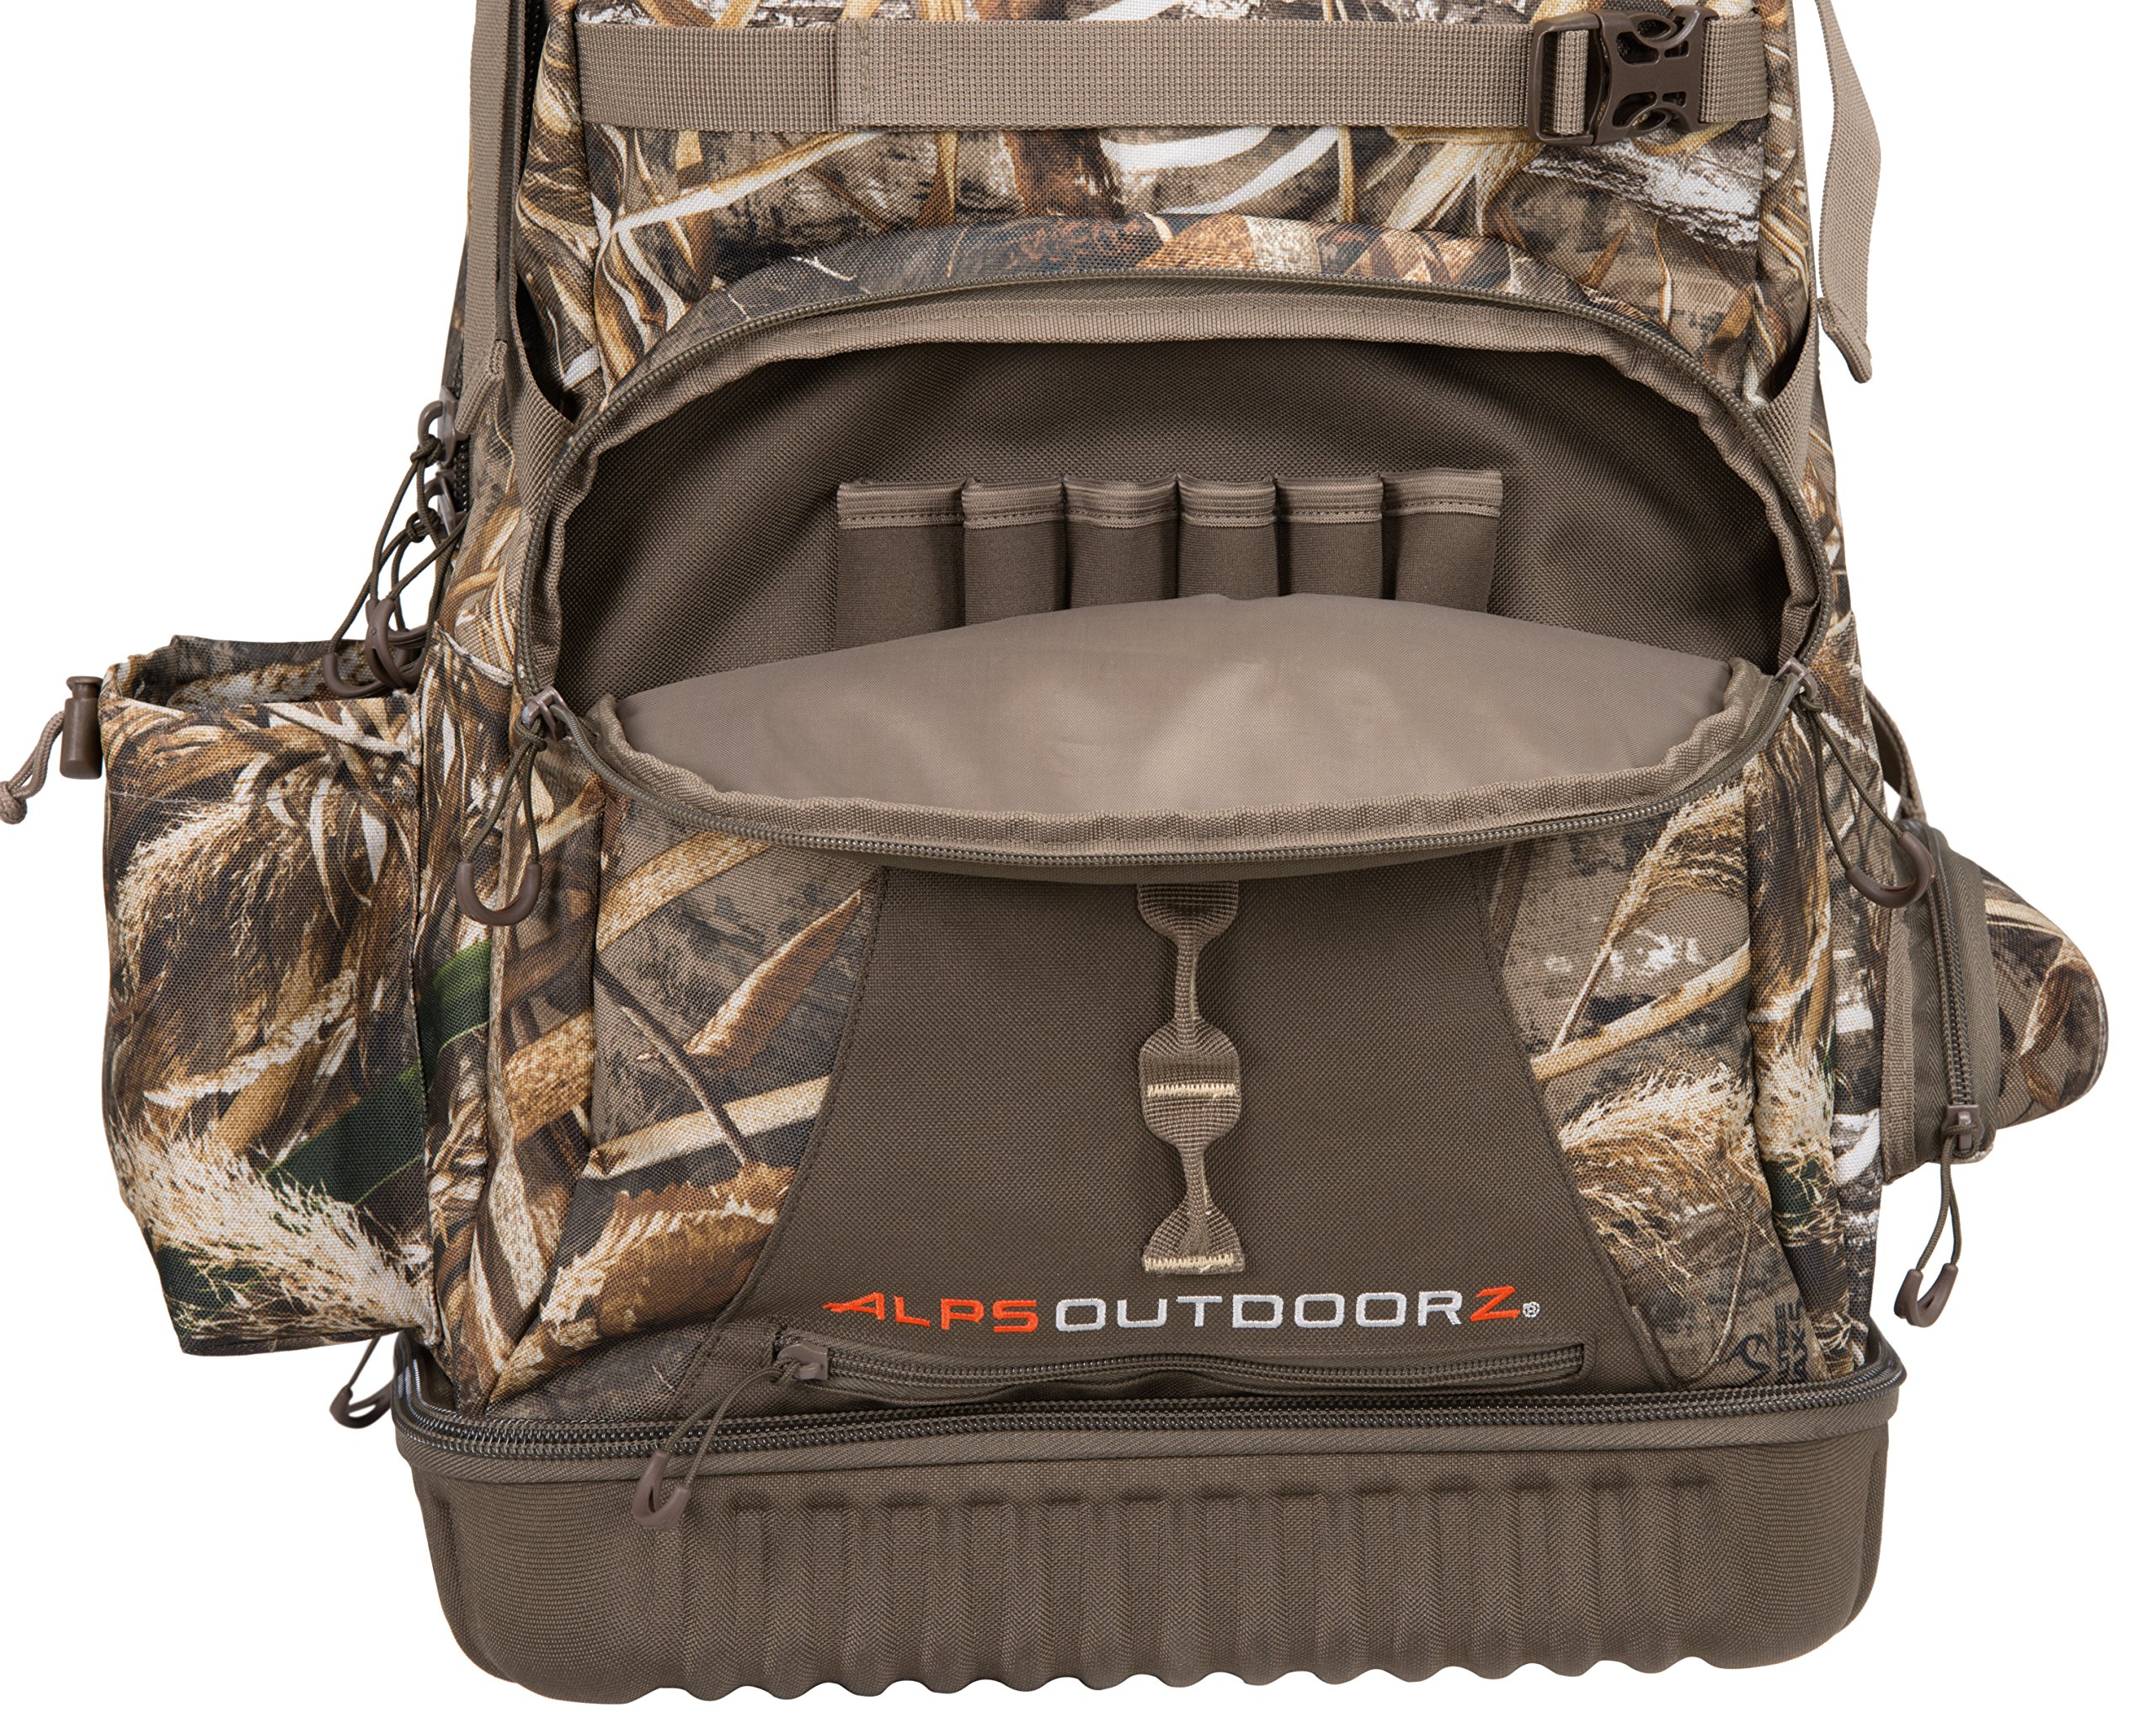 Whg Alps Outdoorz Delta Waterfowl Backpack Blind Bag